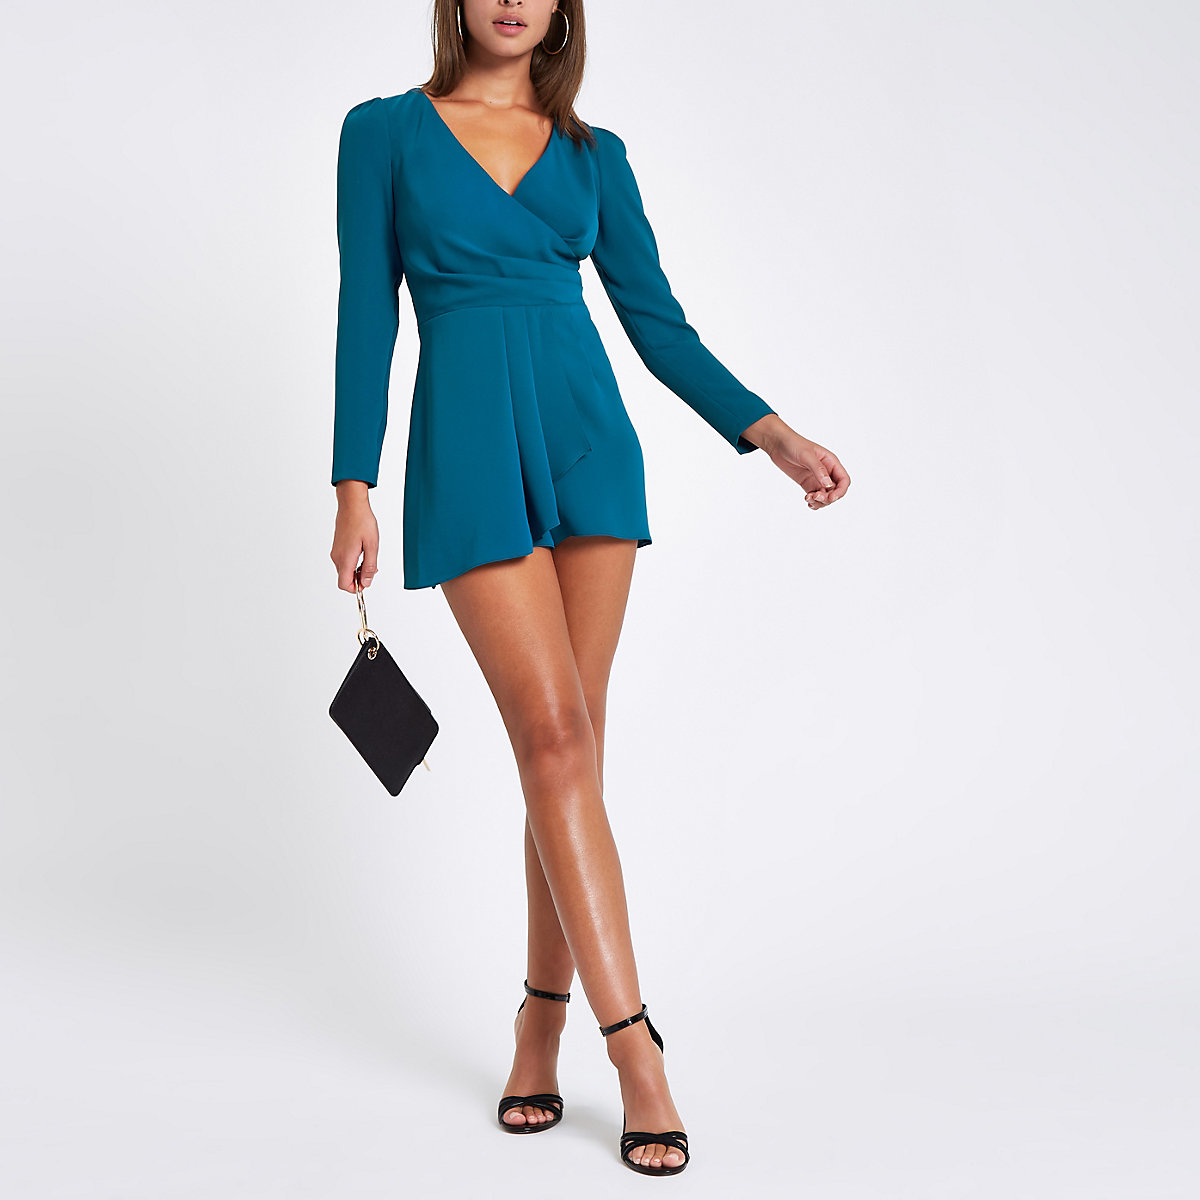 f6b37067d85 Teal wrap front tie back romper - Rompers - Rompers   Jumpsuits - women